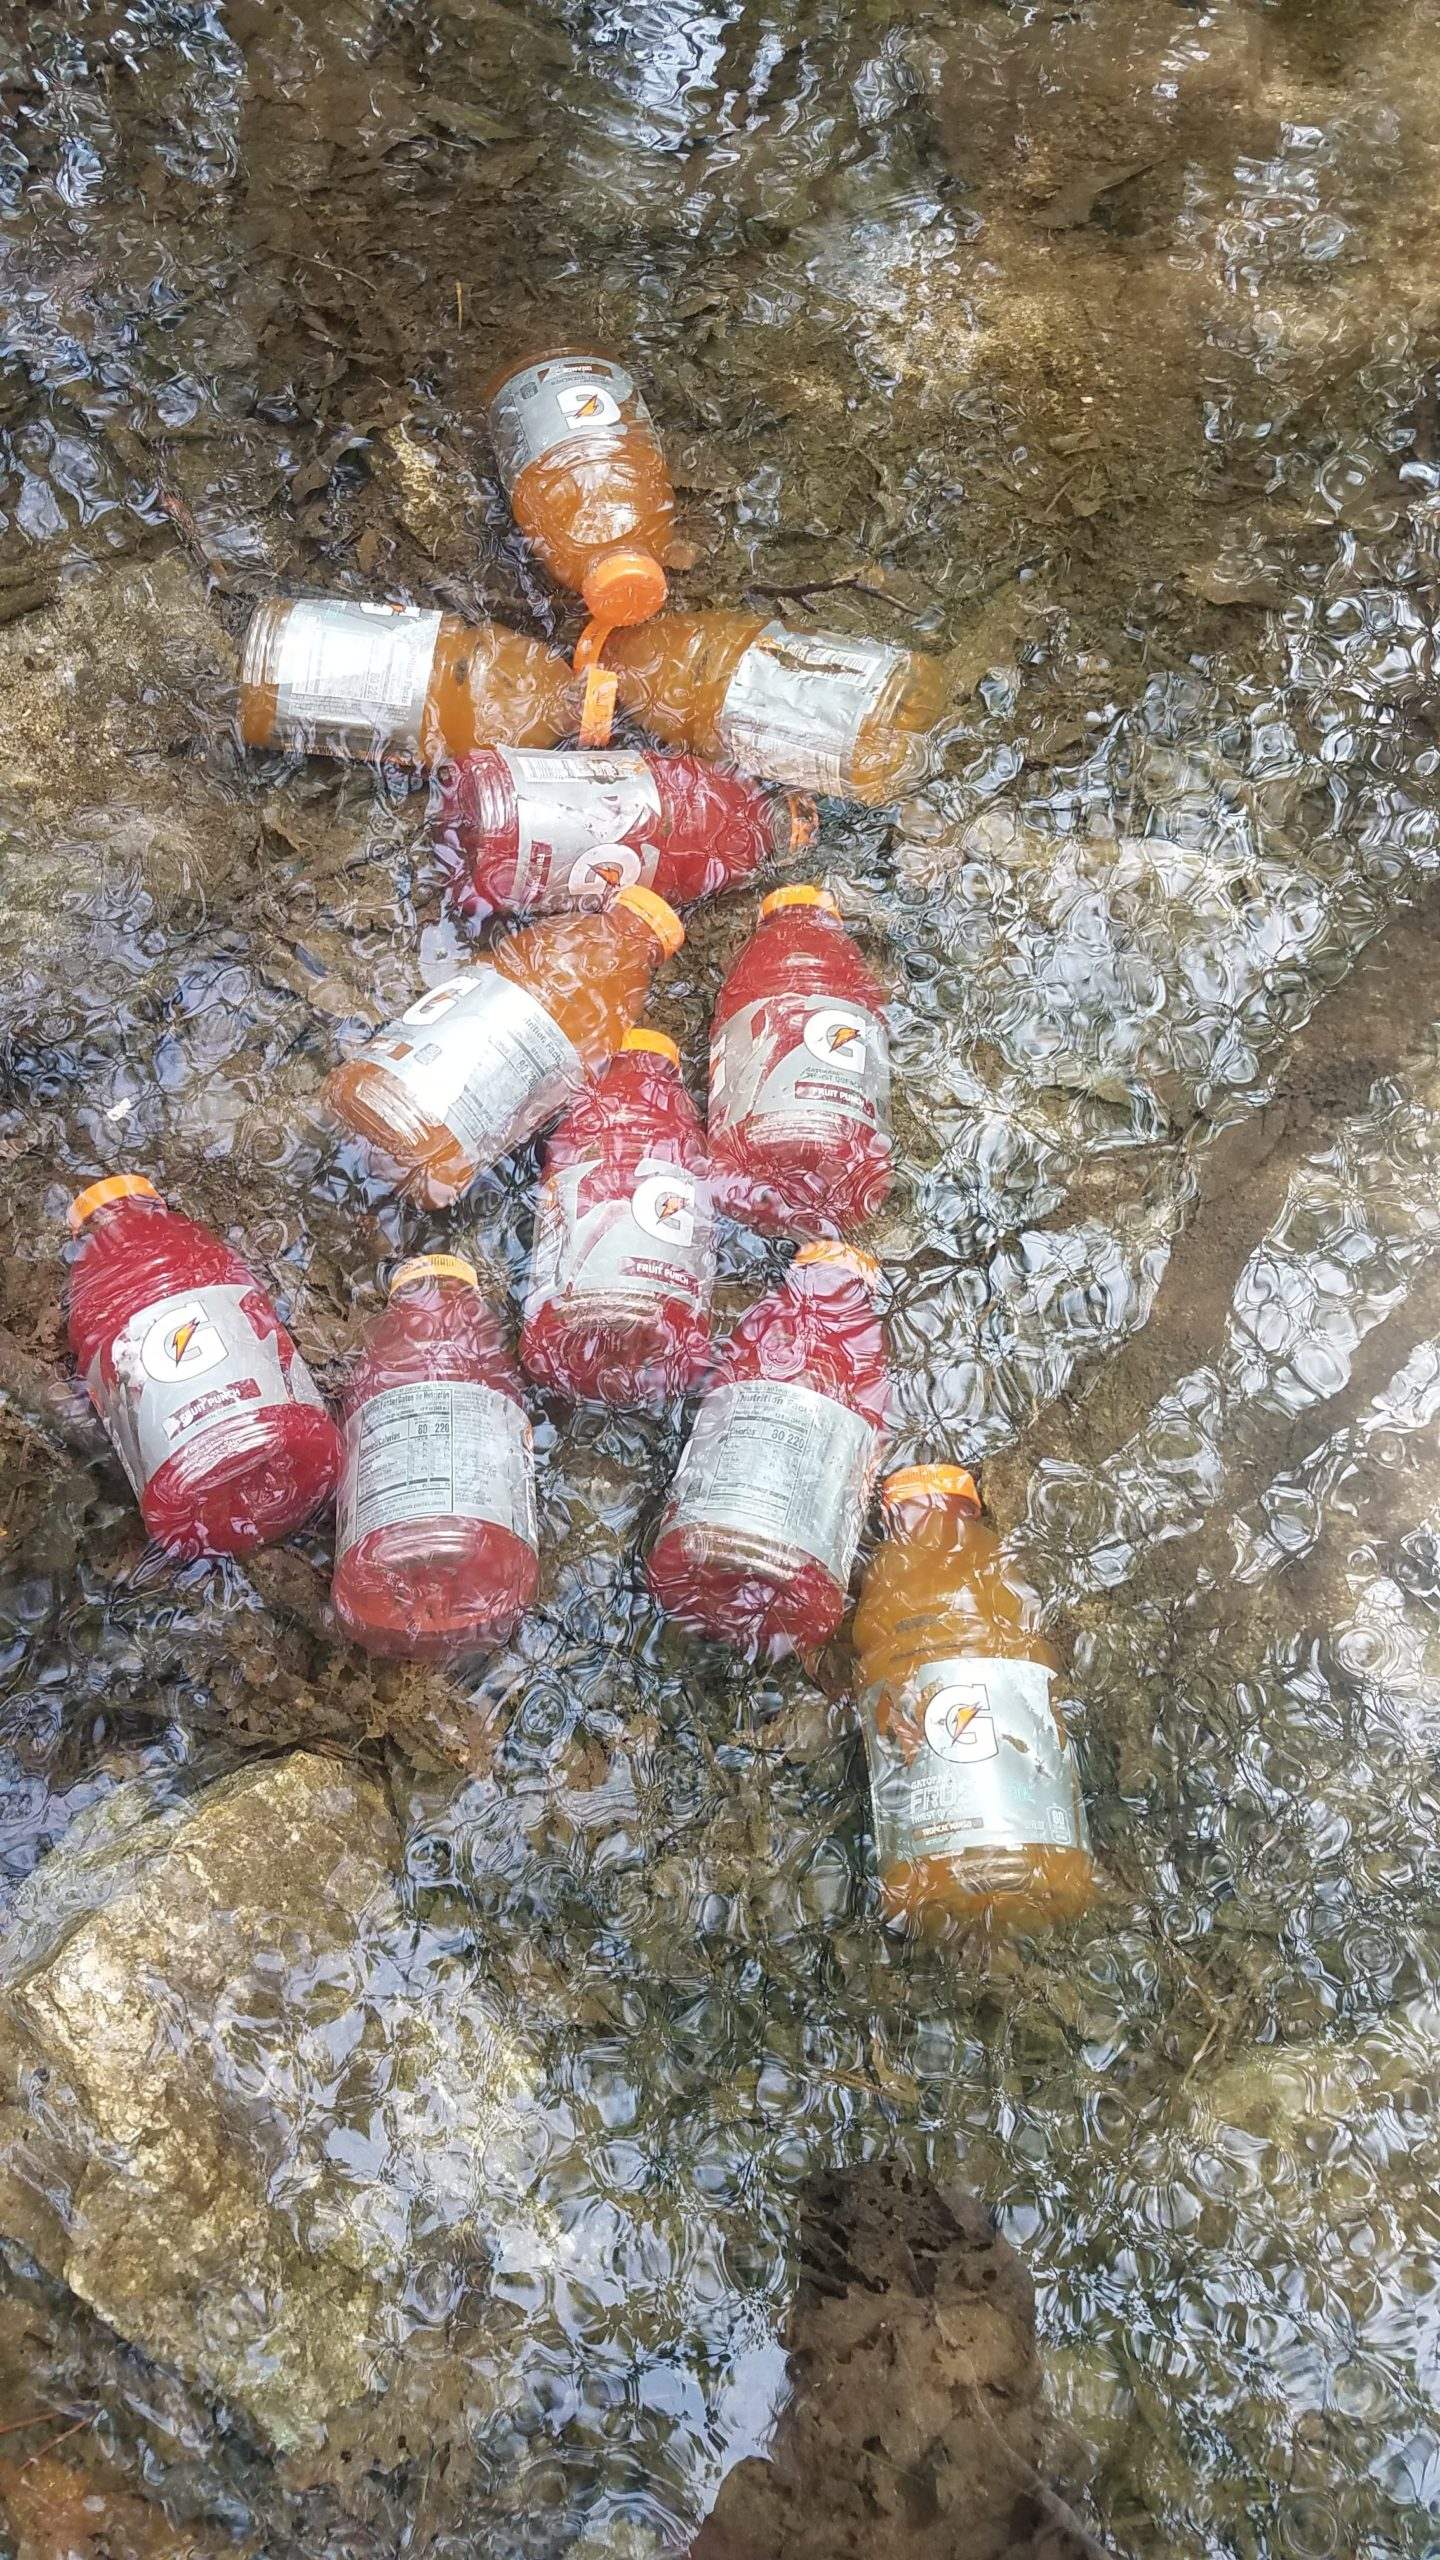 A cache of gatorades for hikers left in a stream